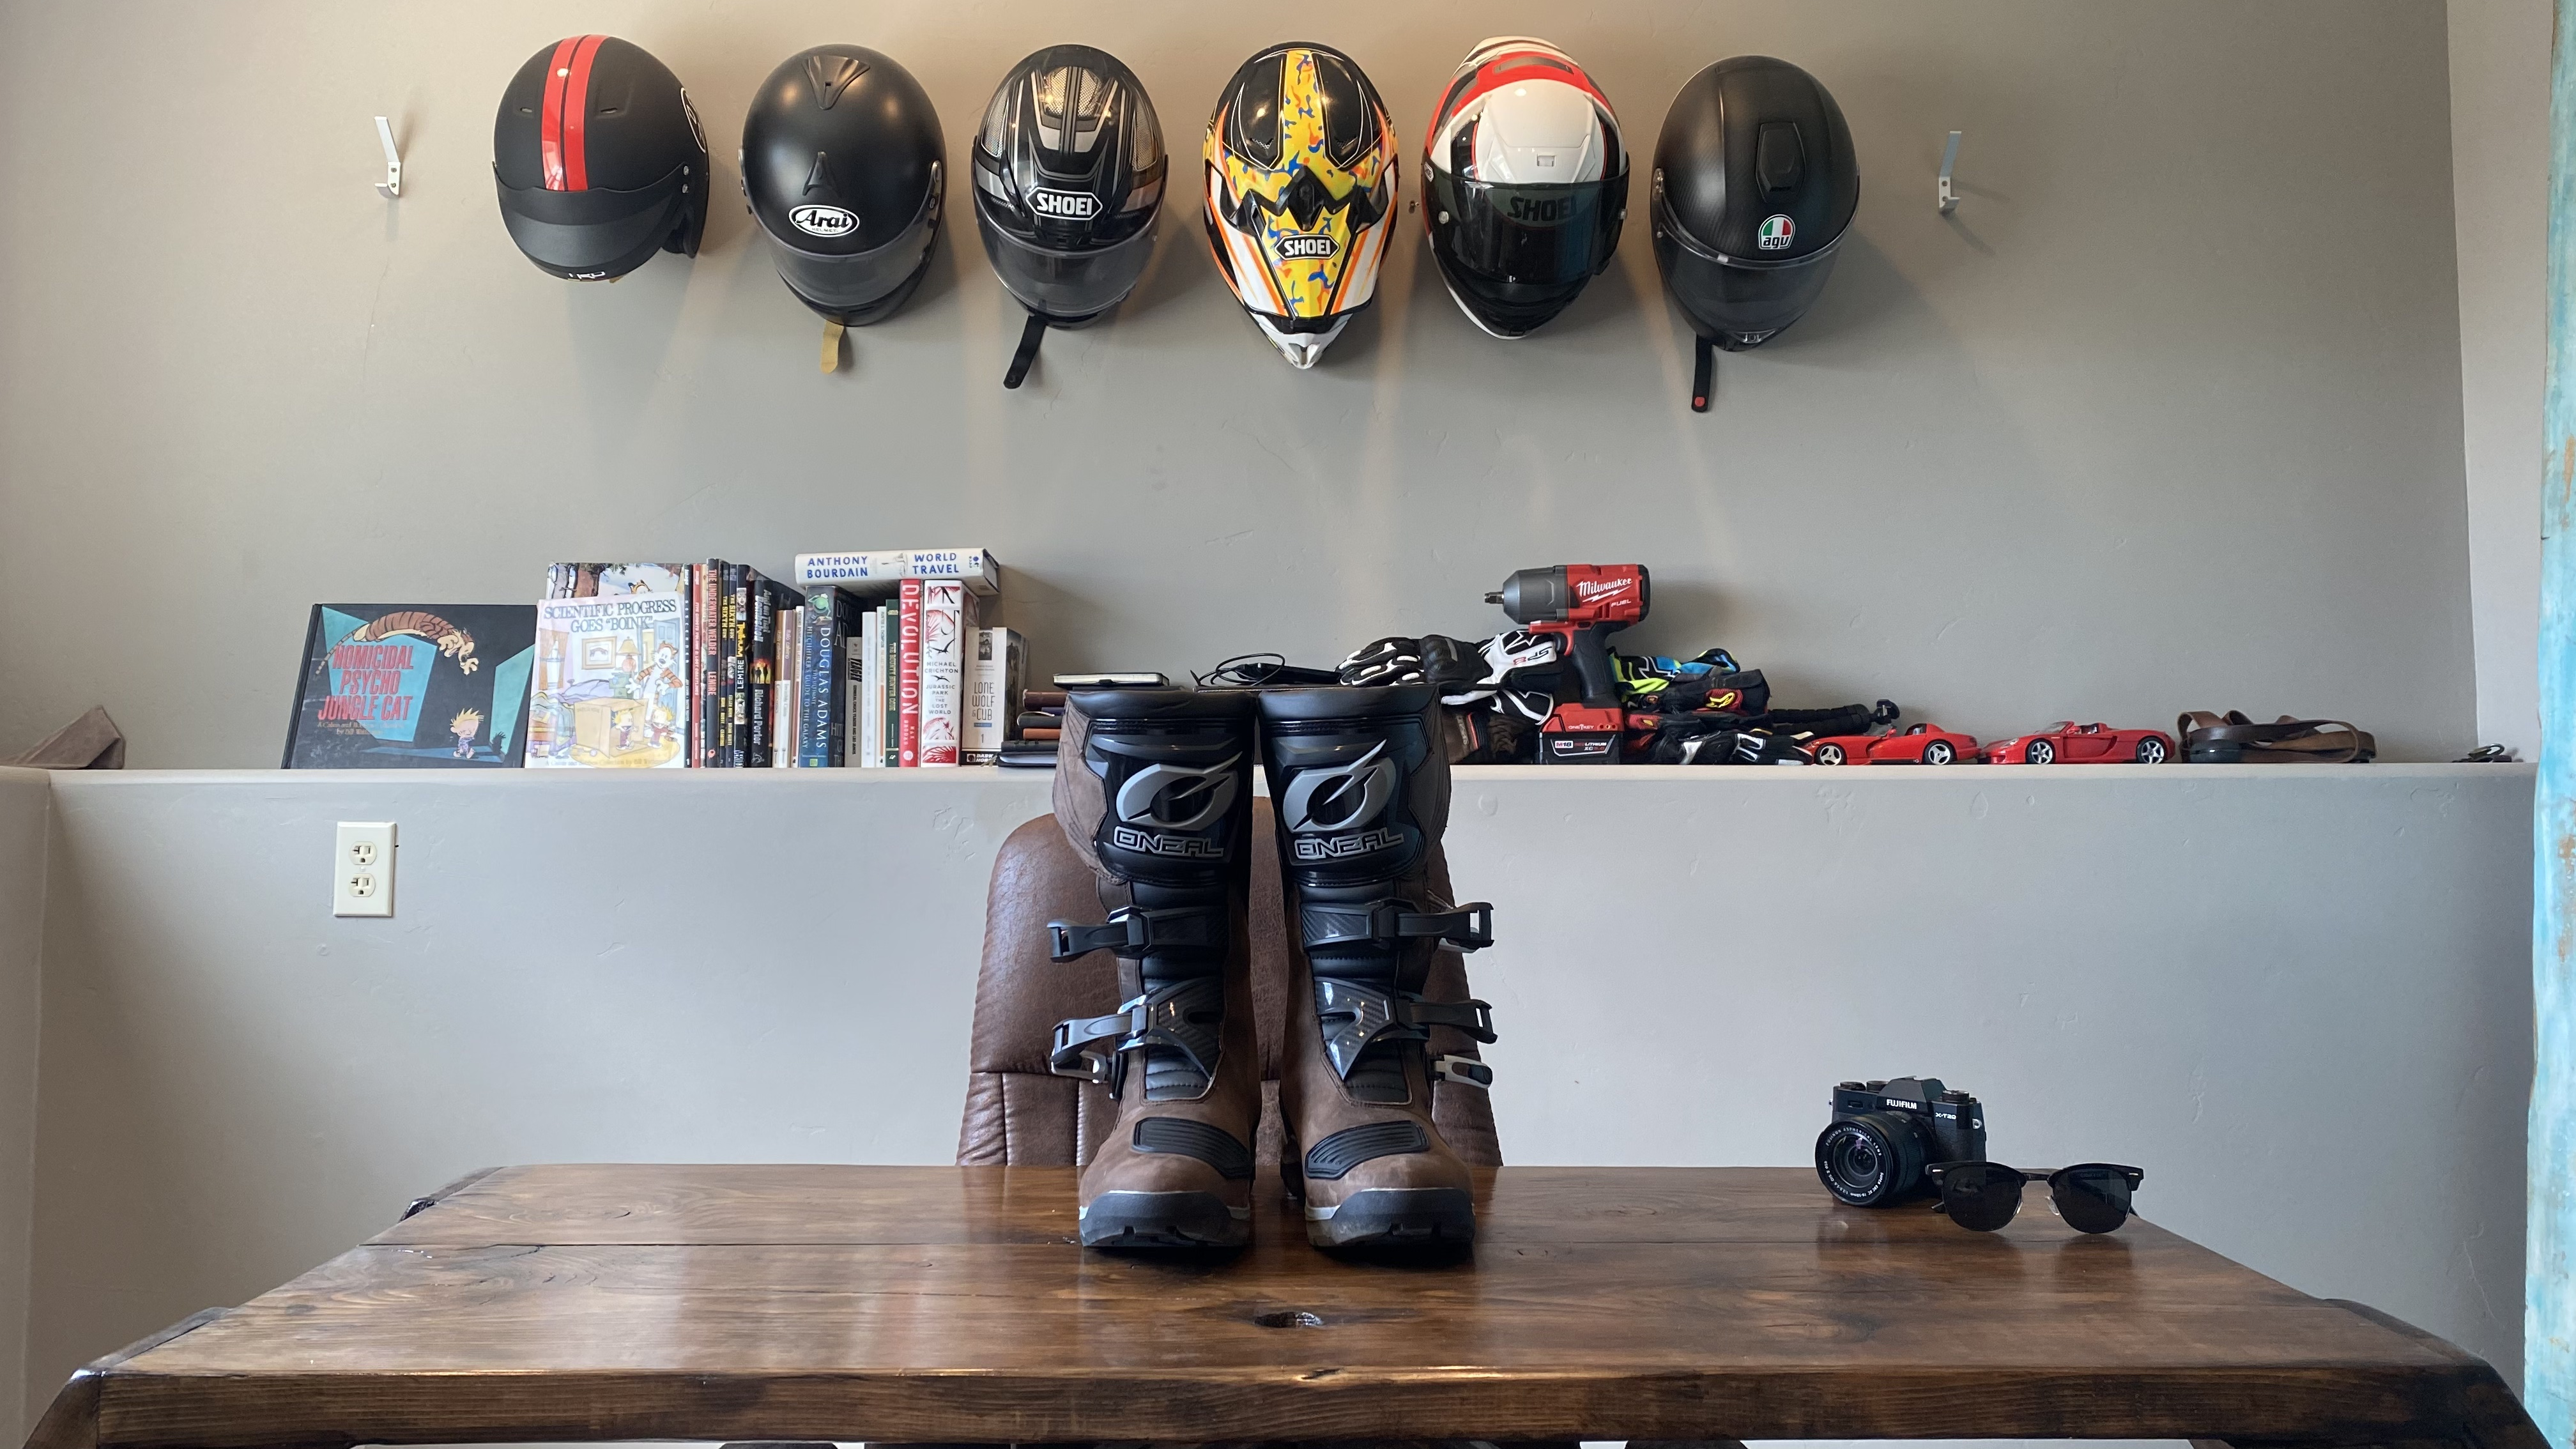 O'Neal's ADV boots.